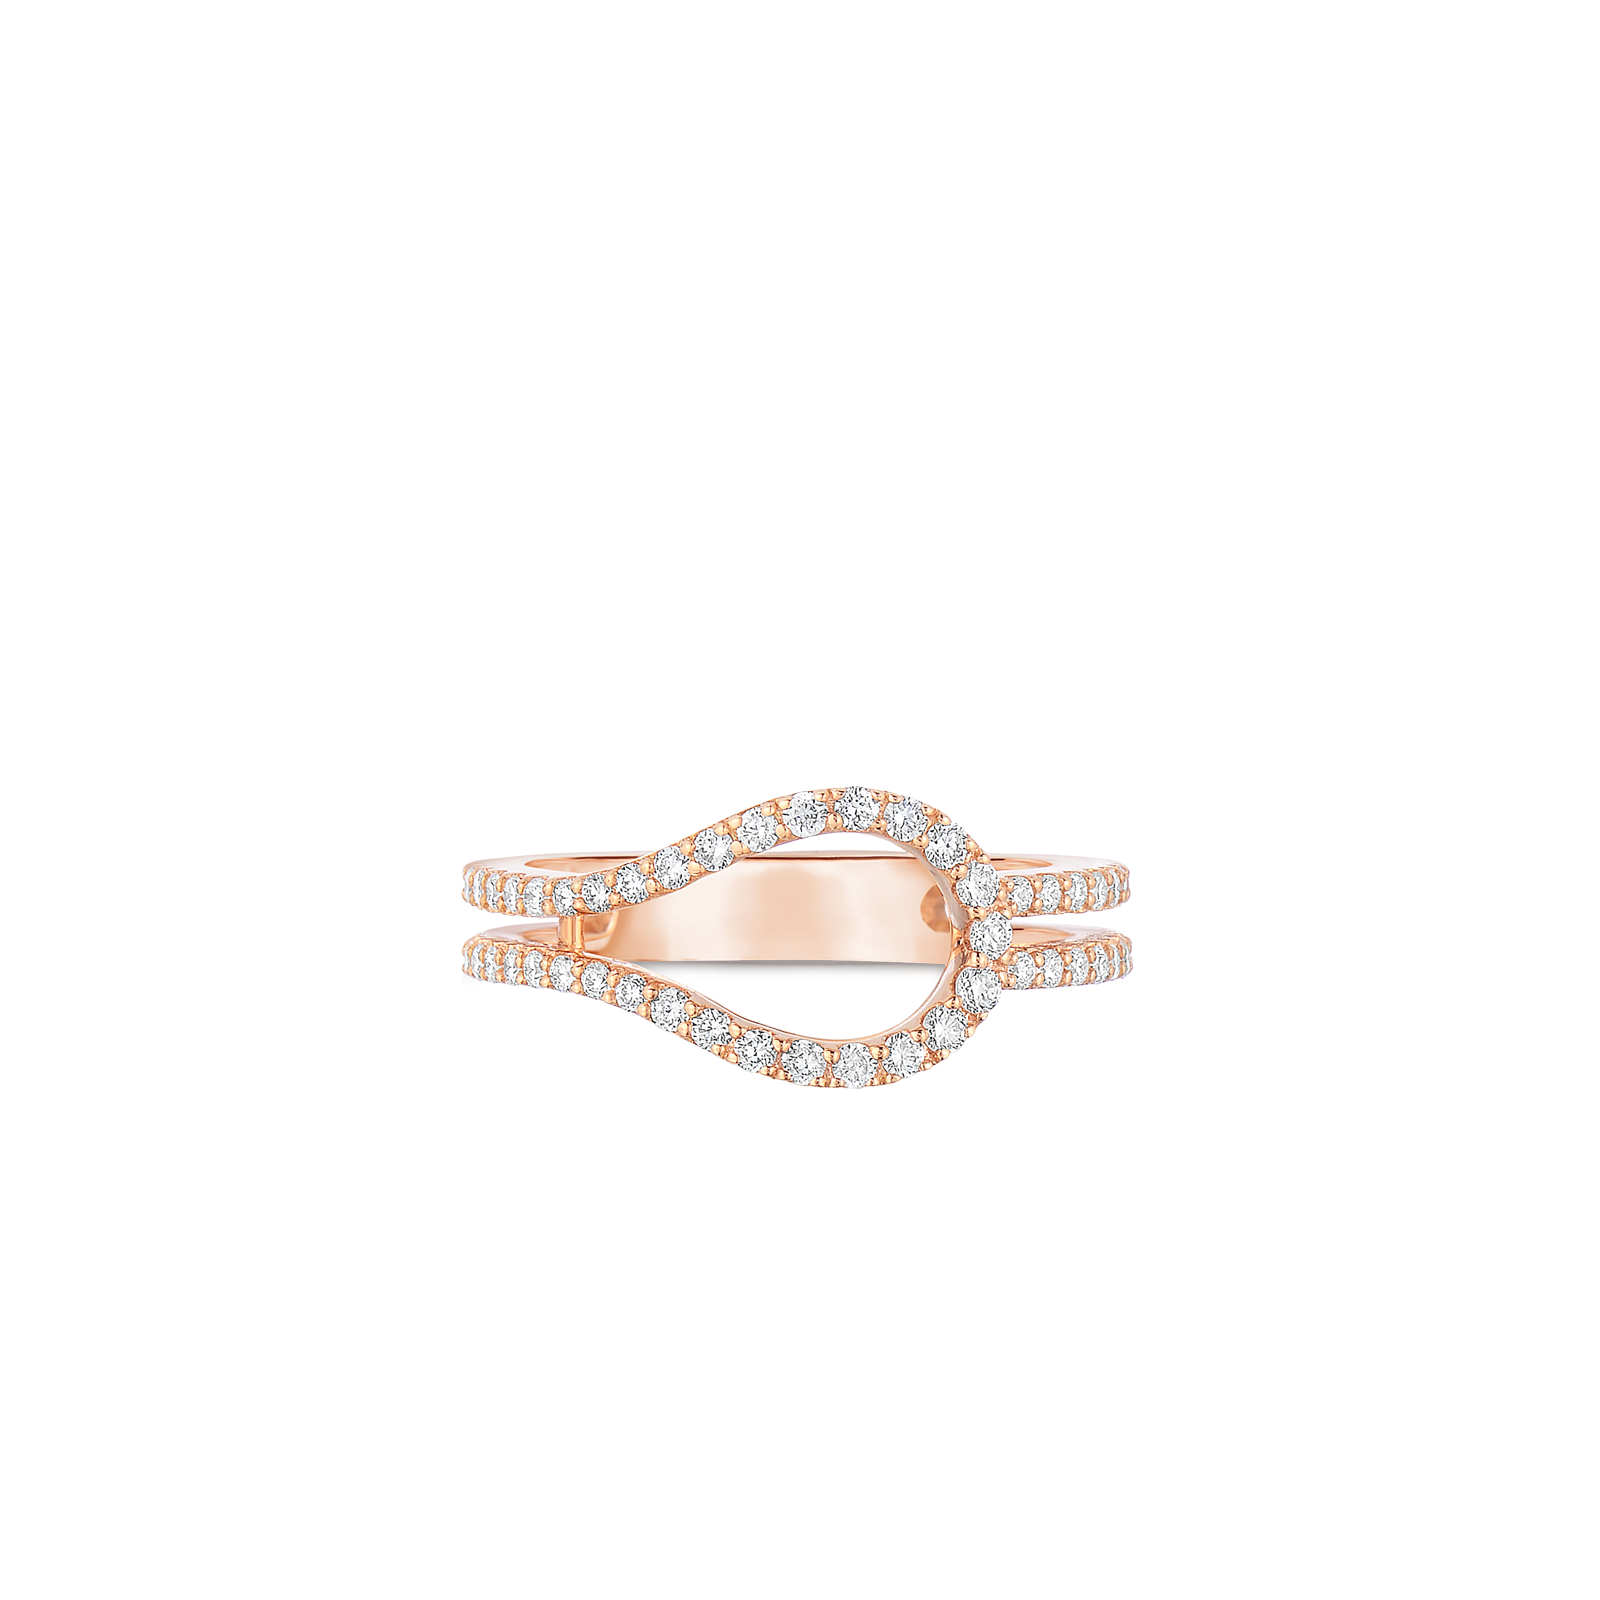 Art Deco Ring With Diamonds 18K Rose Gold 6.5